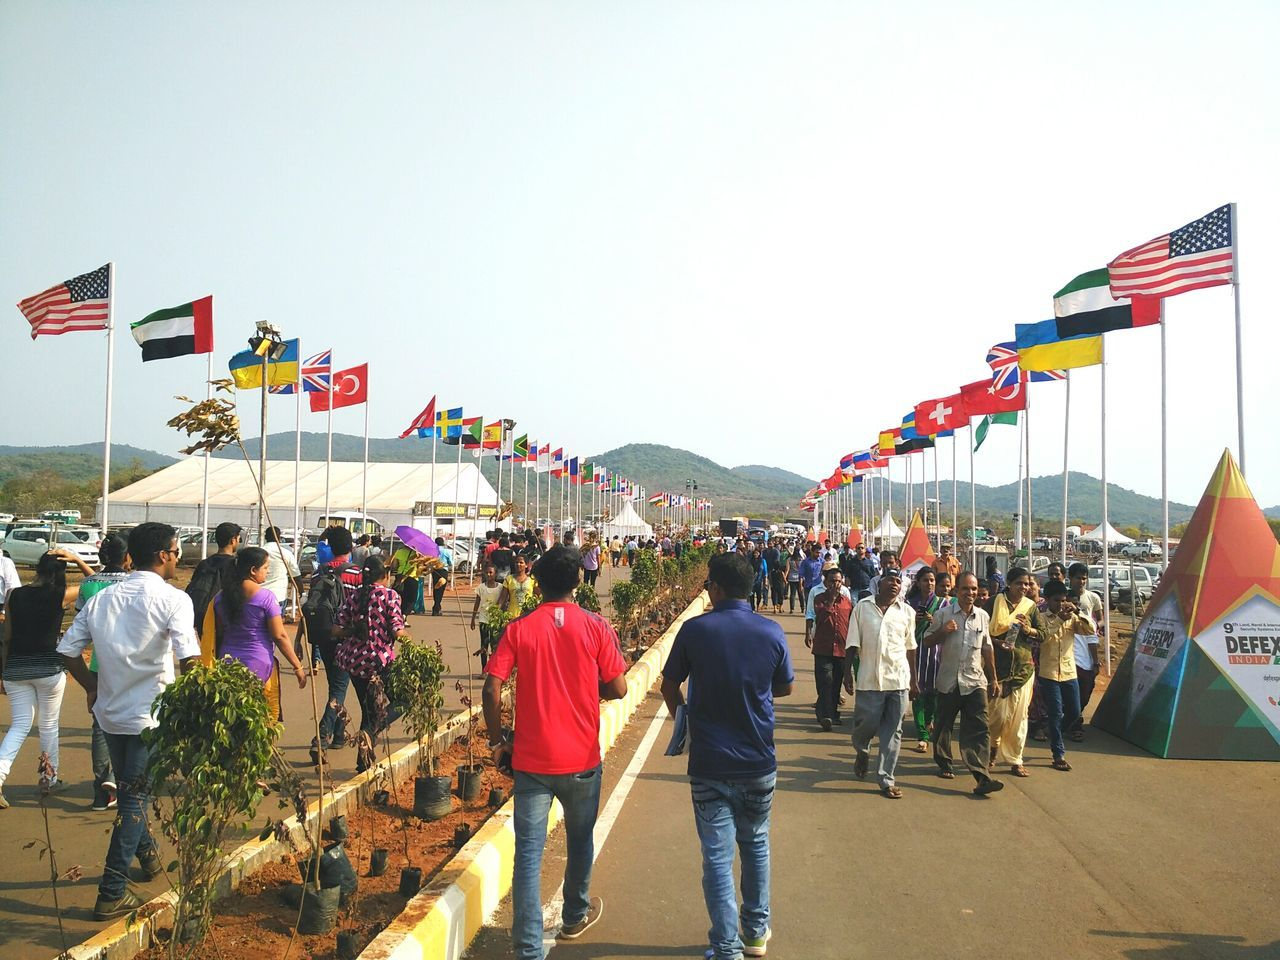 The national flags of all the counties participating in the DefExpo 2016 raised at the site of defence exhibition in Quitol. National Flags Countries Participating Defexpo Defexpo 2016 Defexpogoa2016 Quitol Goa India Goa India Waving Flags Wind Windy Day People Walking Entryway Indian Army Military Defence Expo Public Crowd Defence Event Defence Expo Defence Exposition